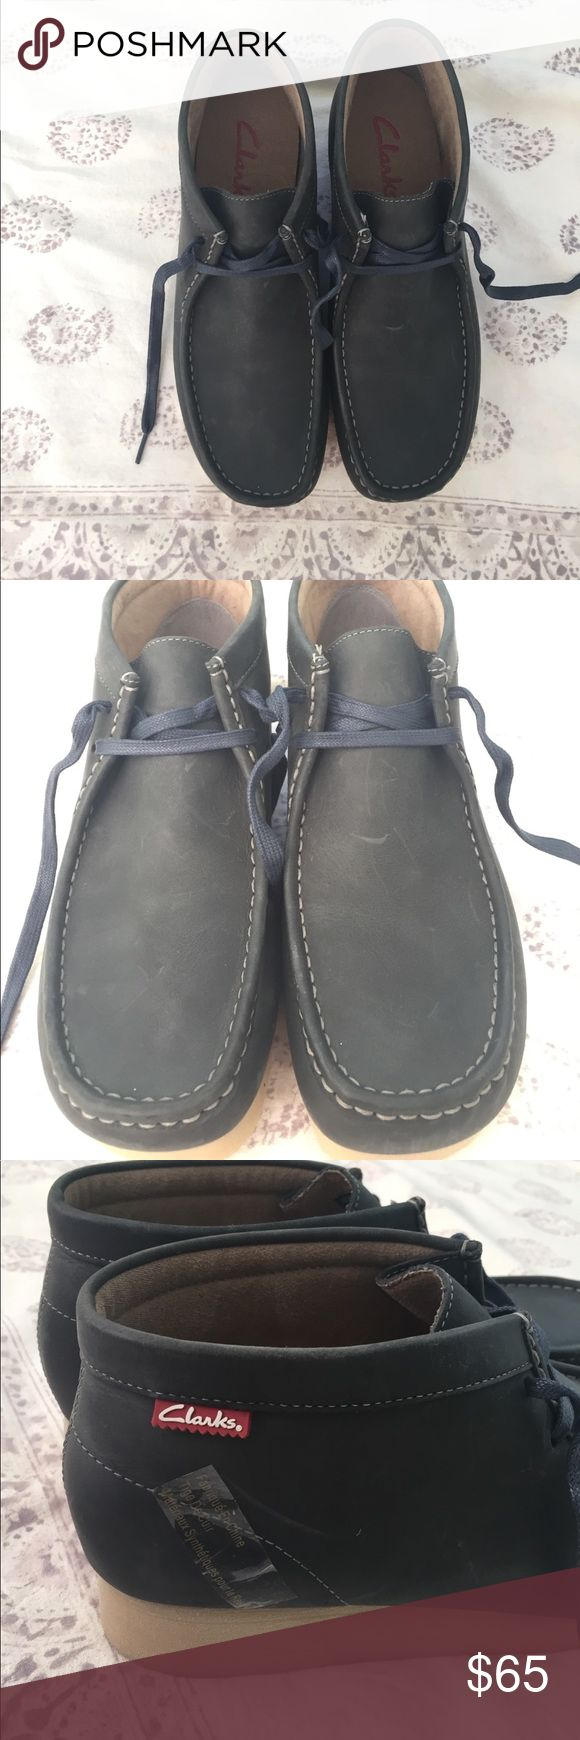 Navy Clarks Wallabees Never worn!!! NWOT! Clark's classic wallabees. Unique navy color, navy laces and beige sole. Men's 9, could fit women's 11! Dress them up or down, super versatile ! Clarks Shoes